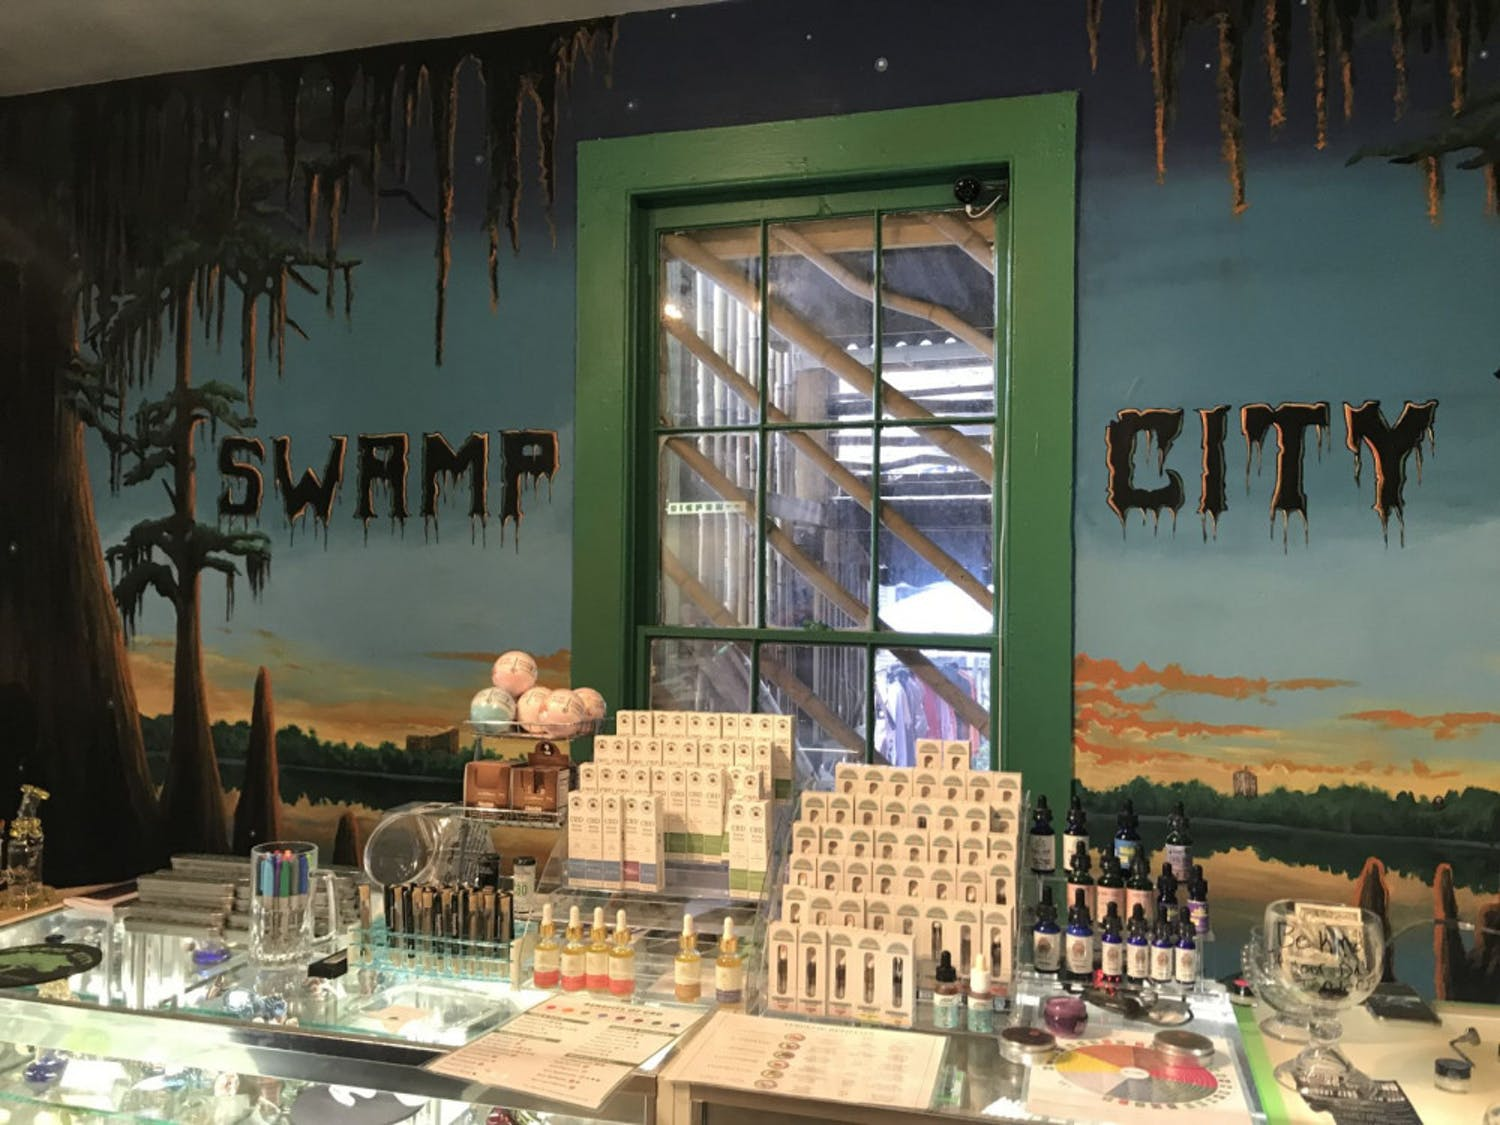 Swamp City Gallery Lounge, which offers CBD products and craft beer, opened on Saturday.